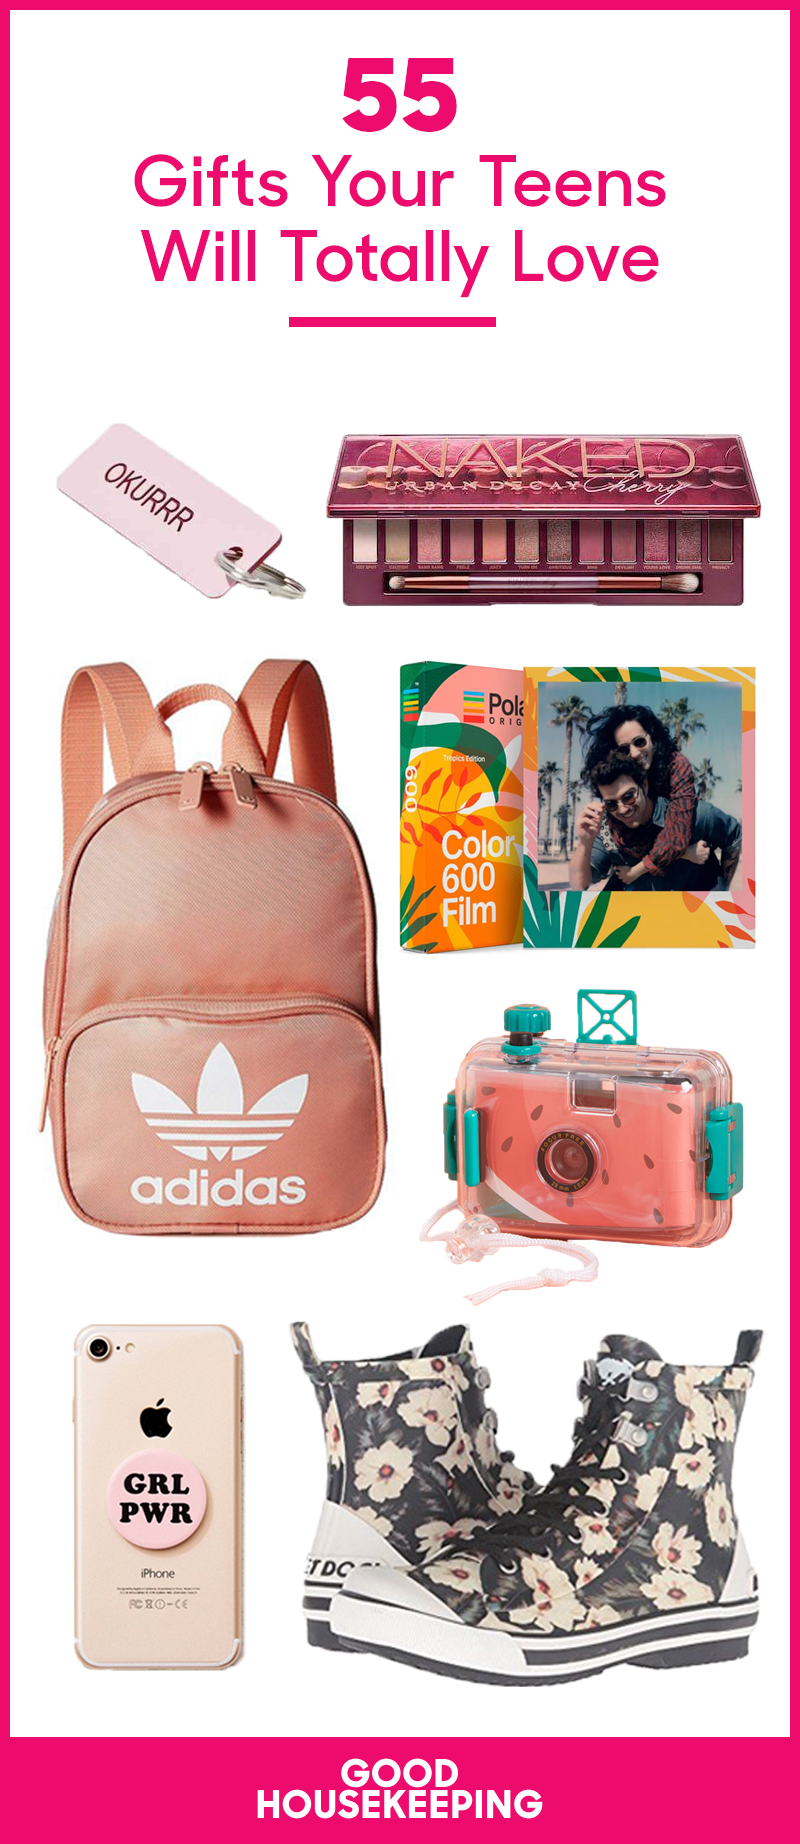 60 Cool Gifts For Teens